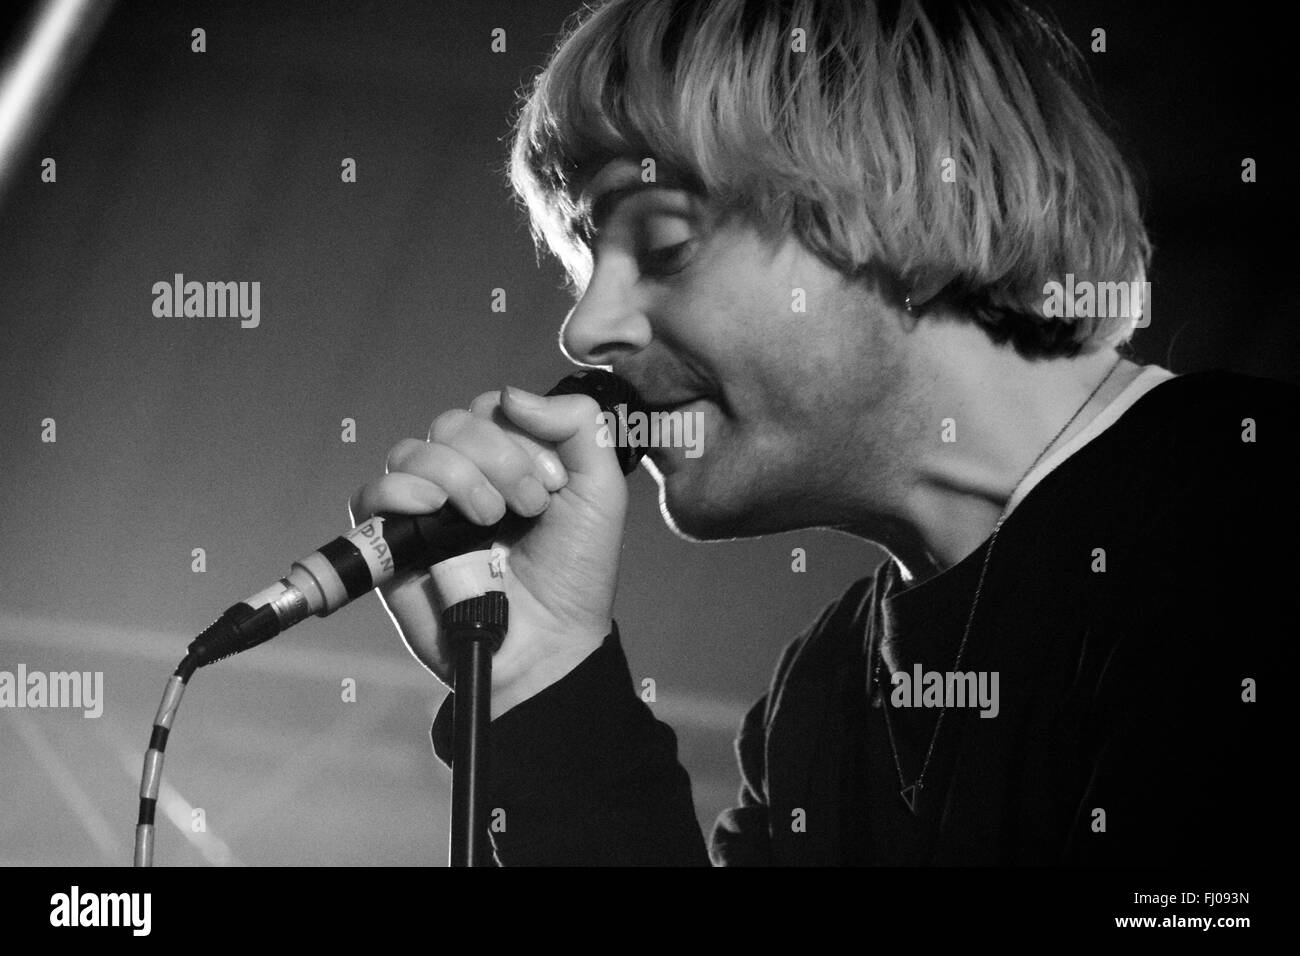 Tim Burgess of The Charlatans performing at Engine Rooms, Southampton in February 2016. - Stock Image